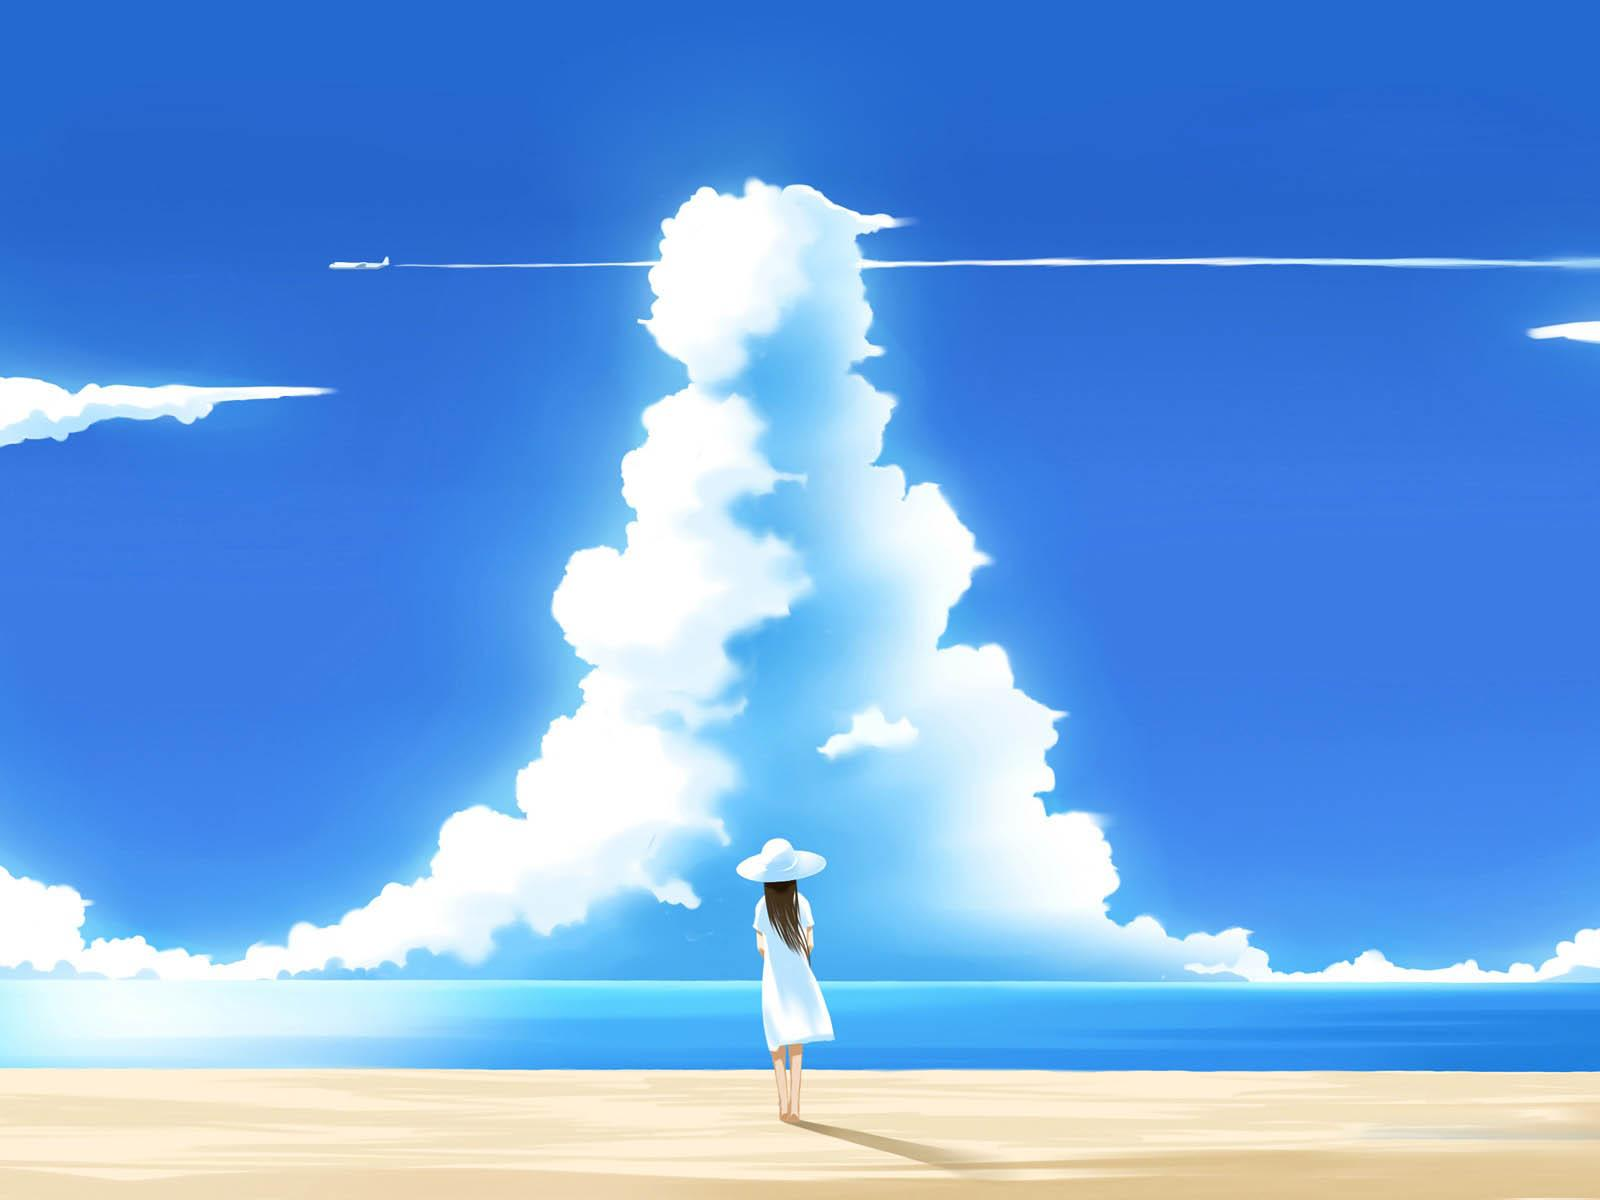 anime beautiful summer day illustration backgrounds wallpapersjpg 1600x1200